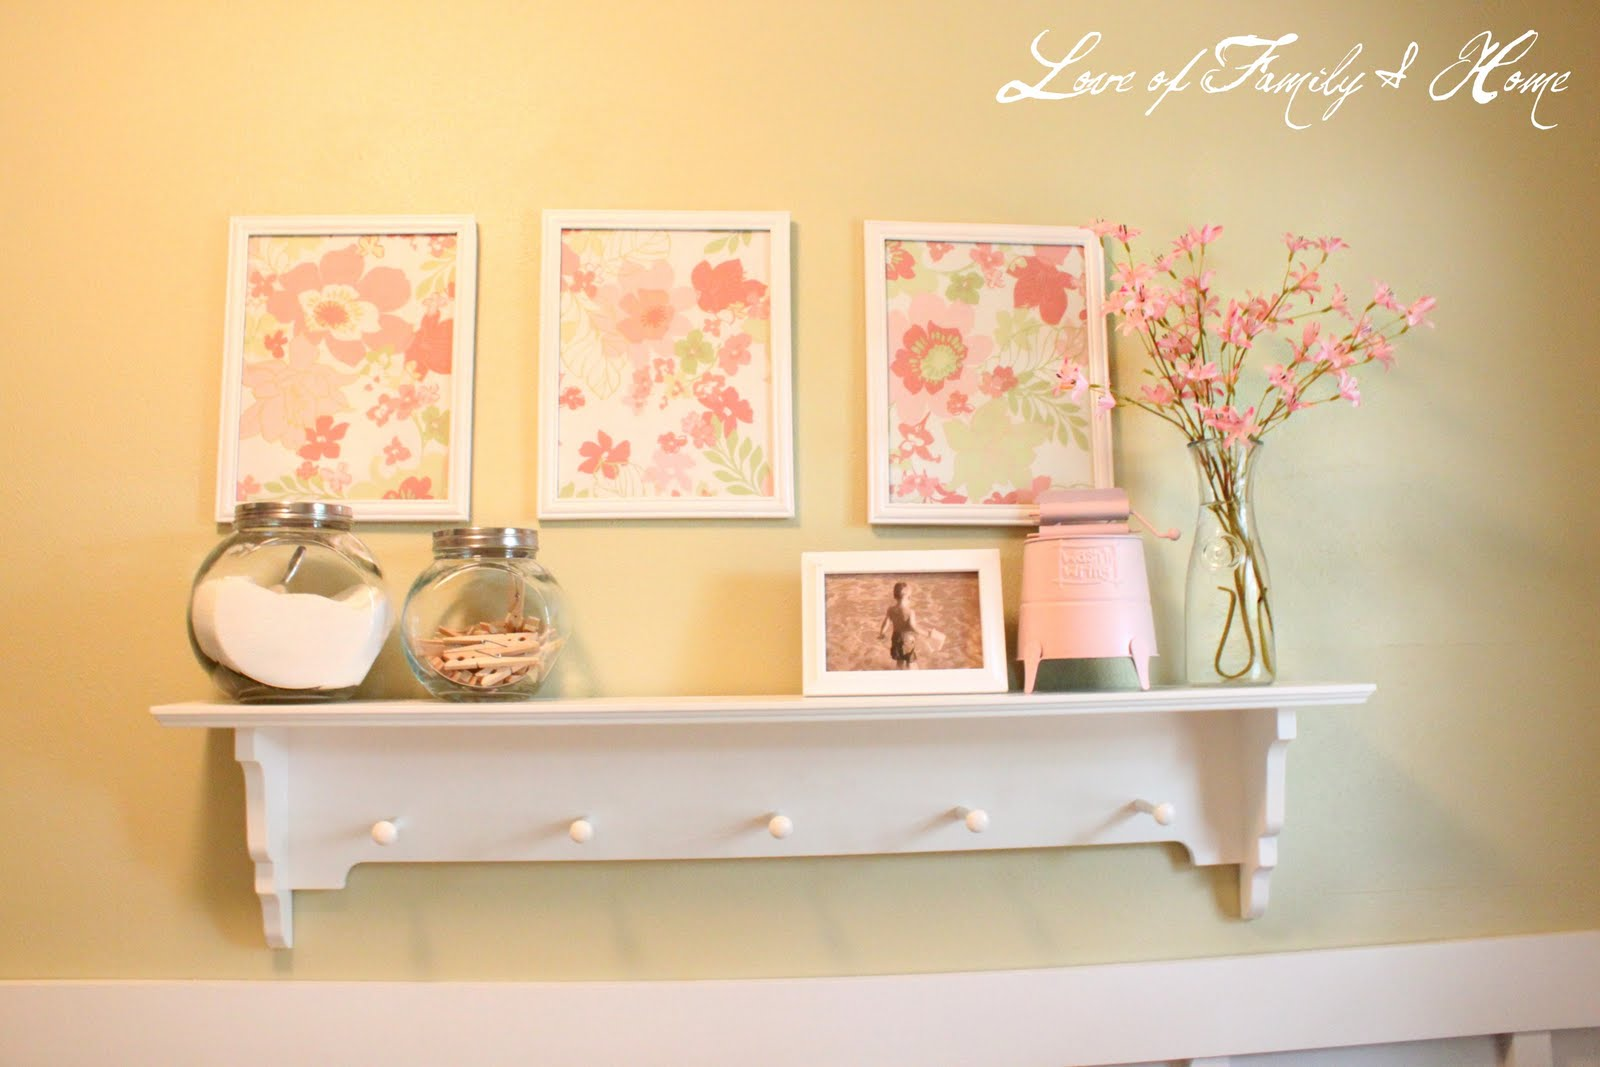 Diy cheap wall art love of family home for Cheap wall art ideas